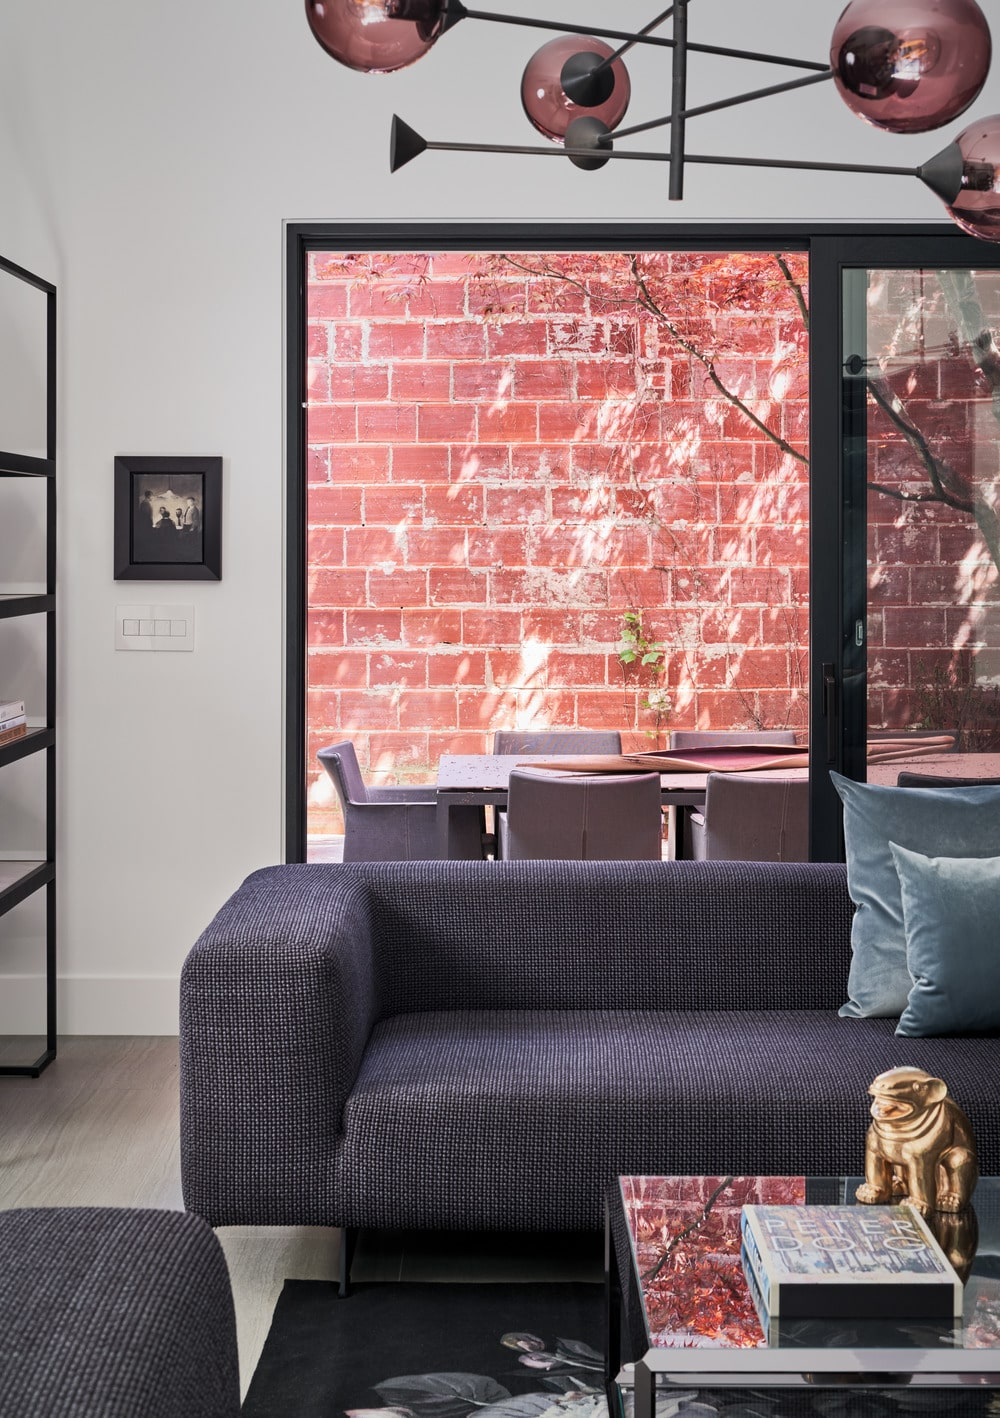 A few steps from the family room is the outdoor dining area by the large red brick wall outside.